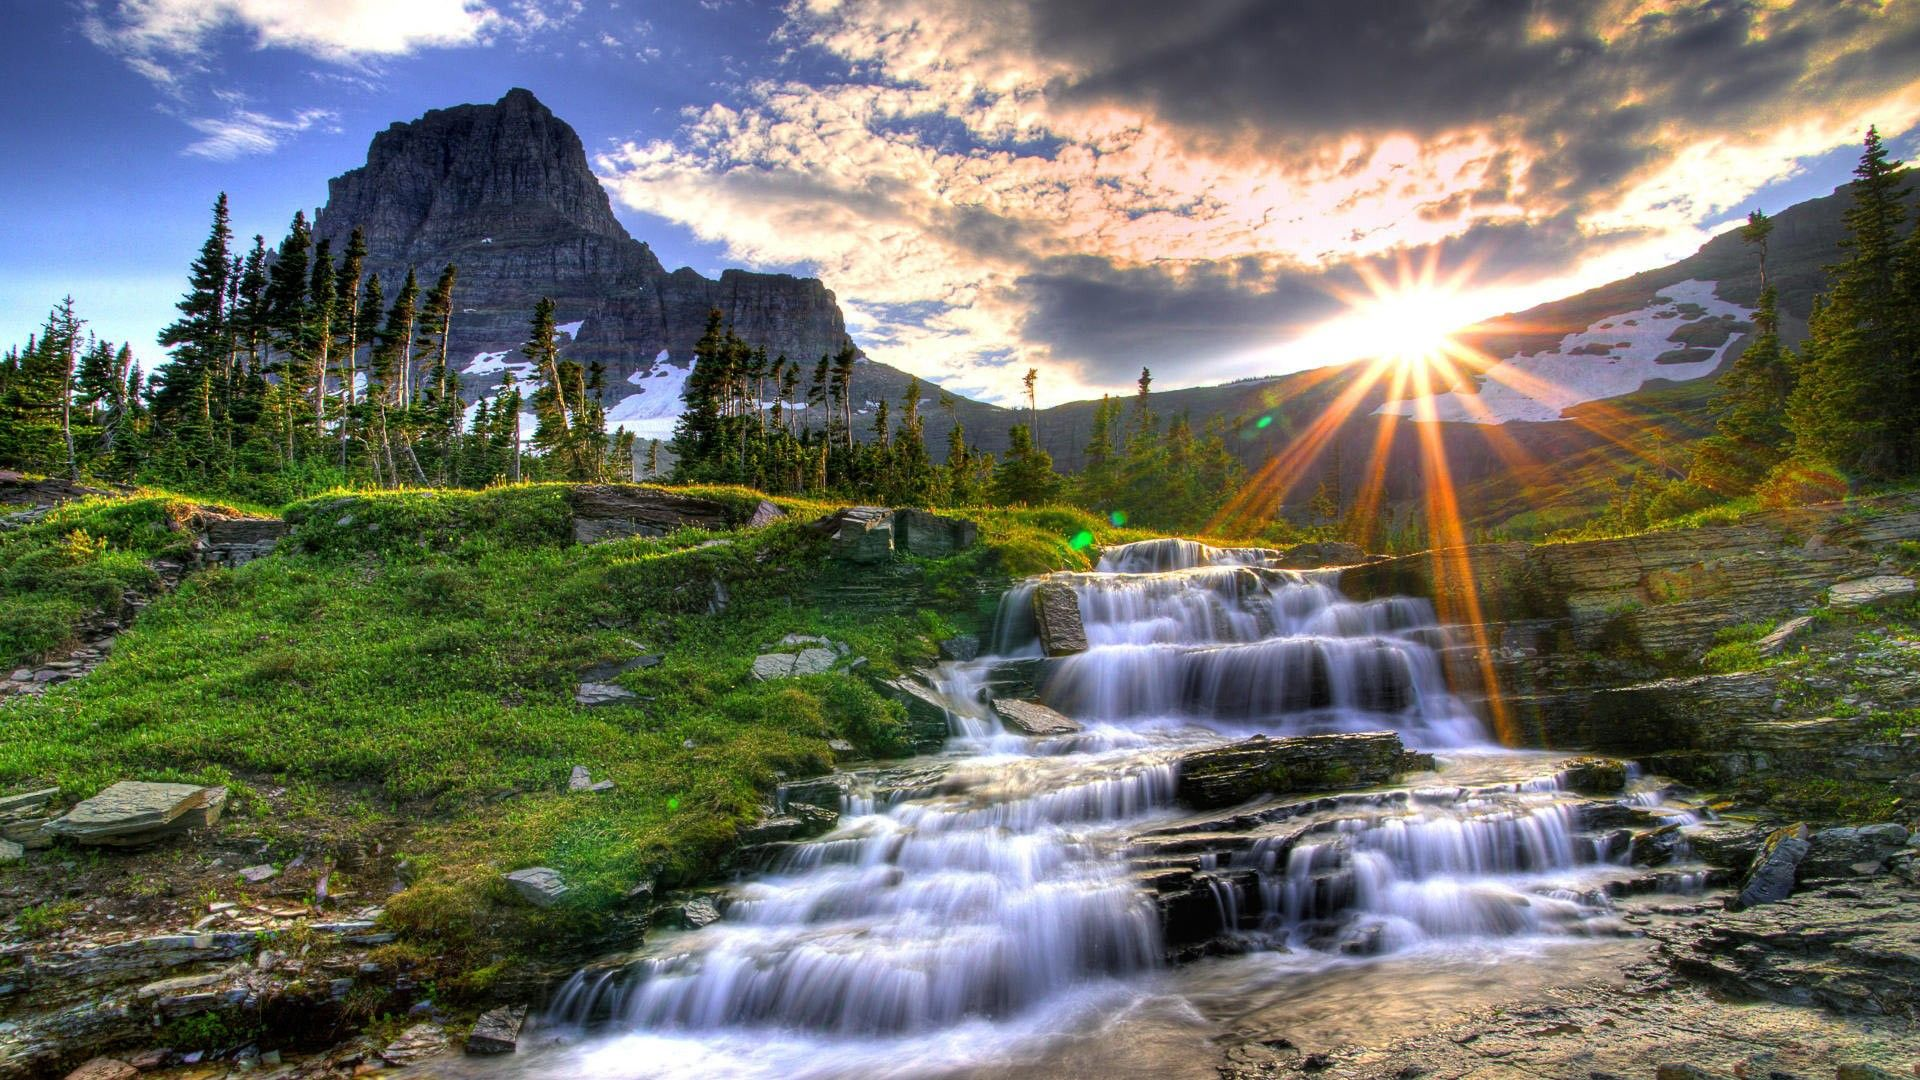 Hd wallpaper nature for mobile - Full Hd Waterfall Nature Landscape Wallpapers For Mobile Sunshine